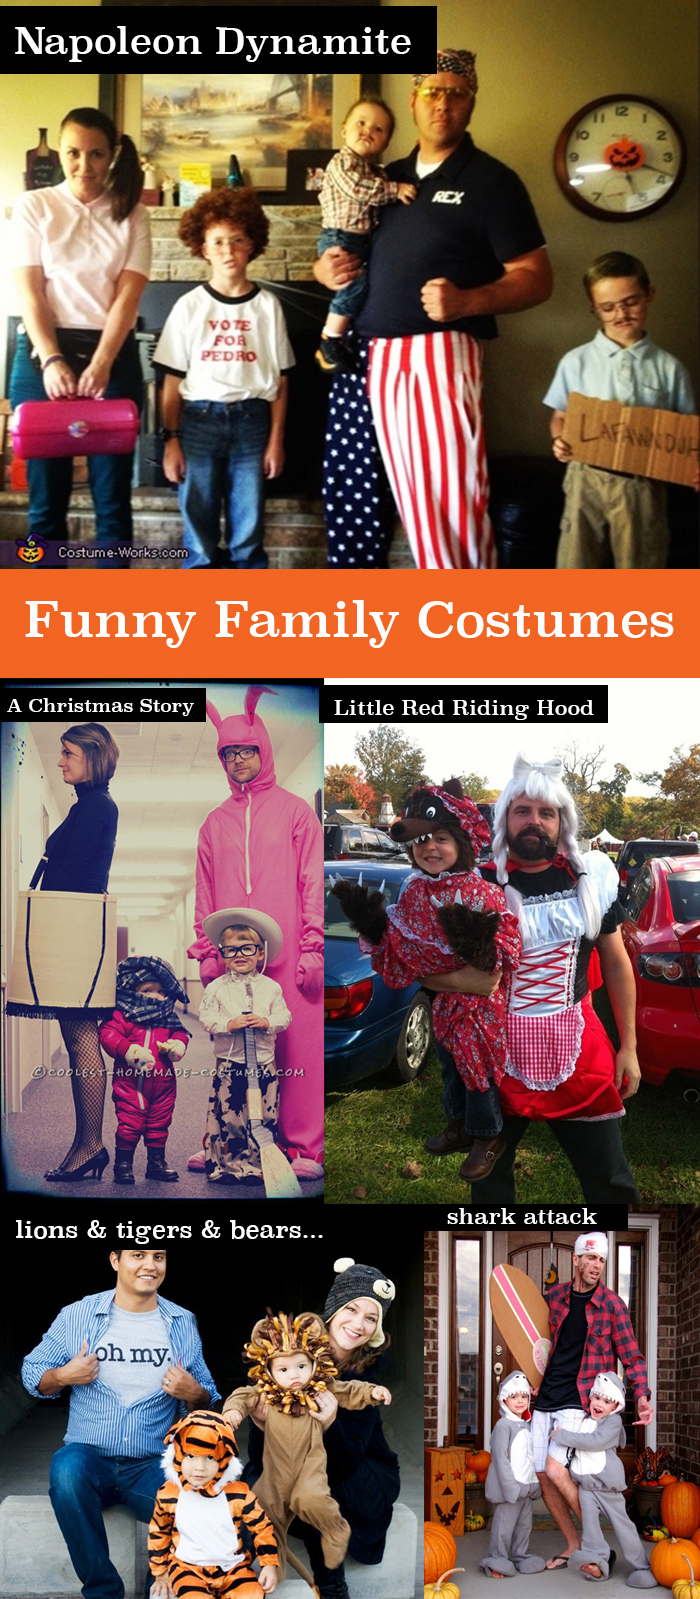 Hilarious family halloween costumes!